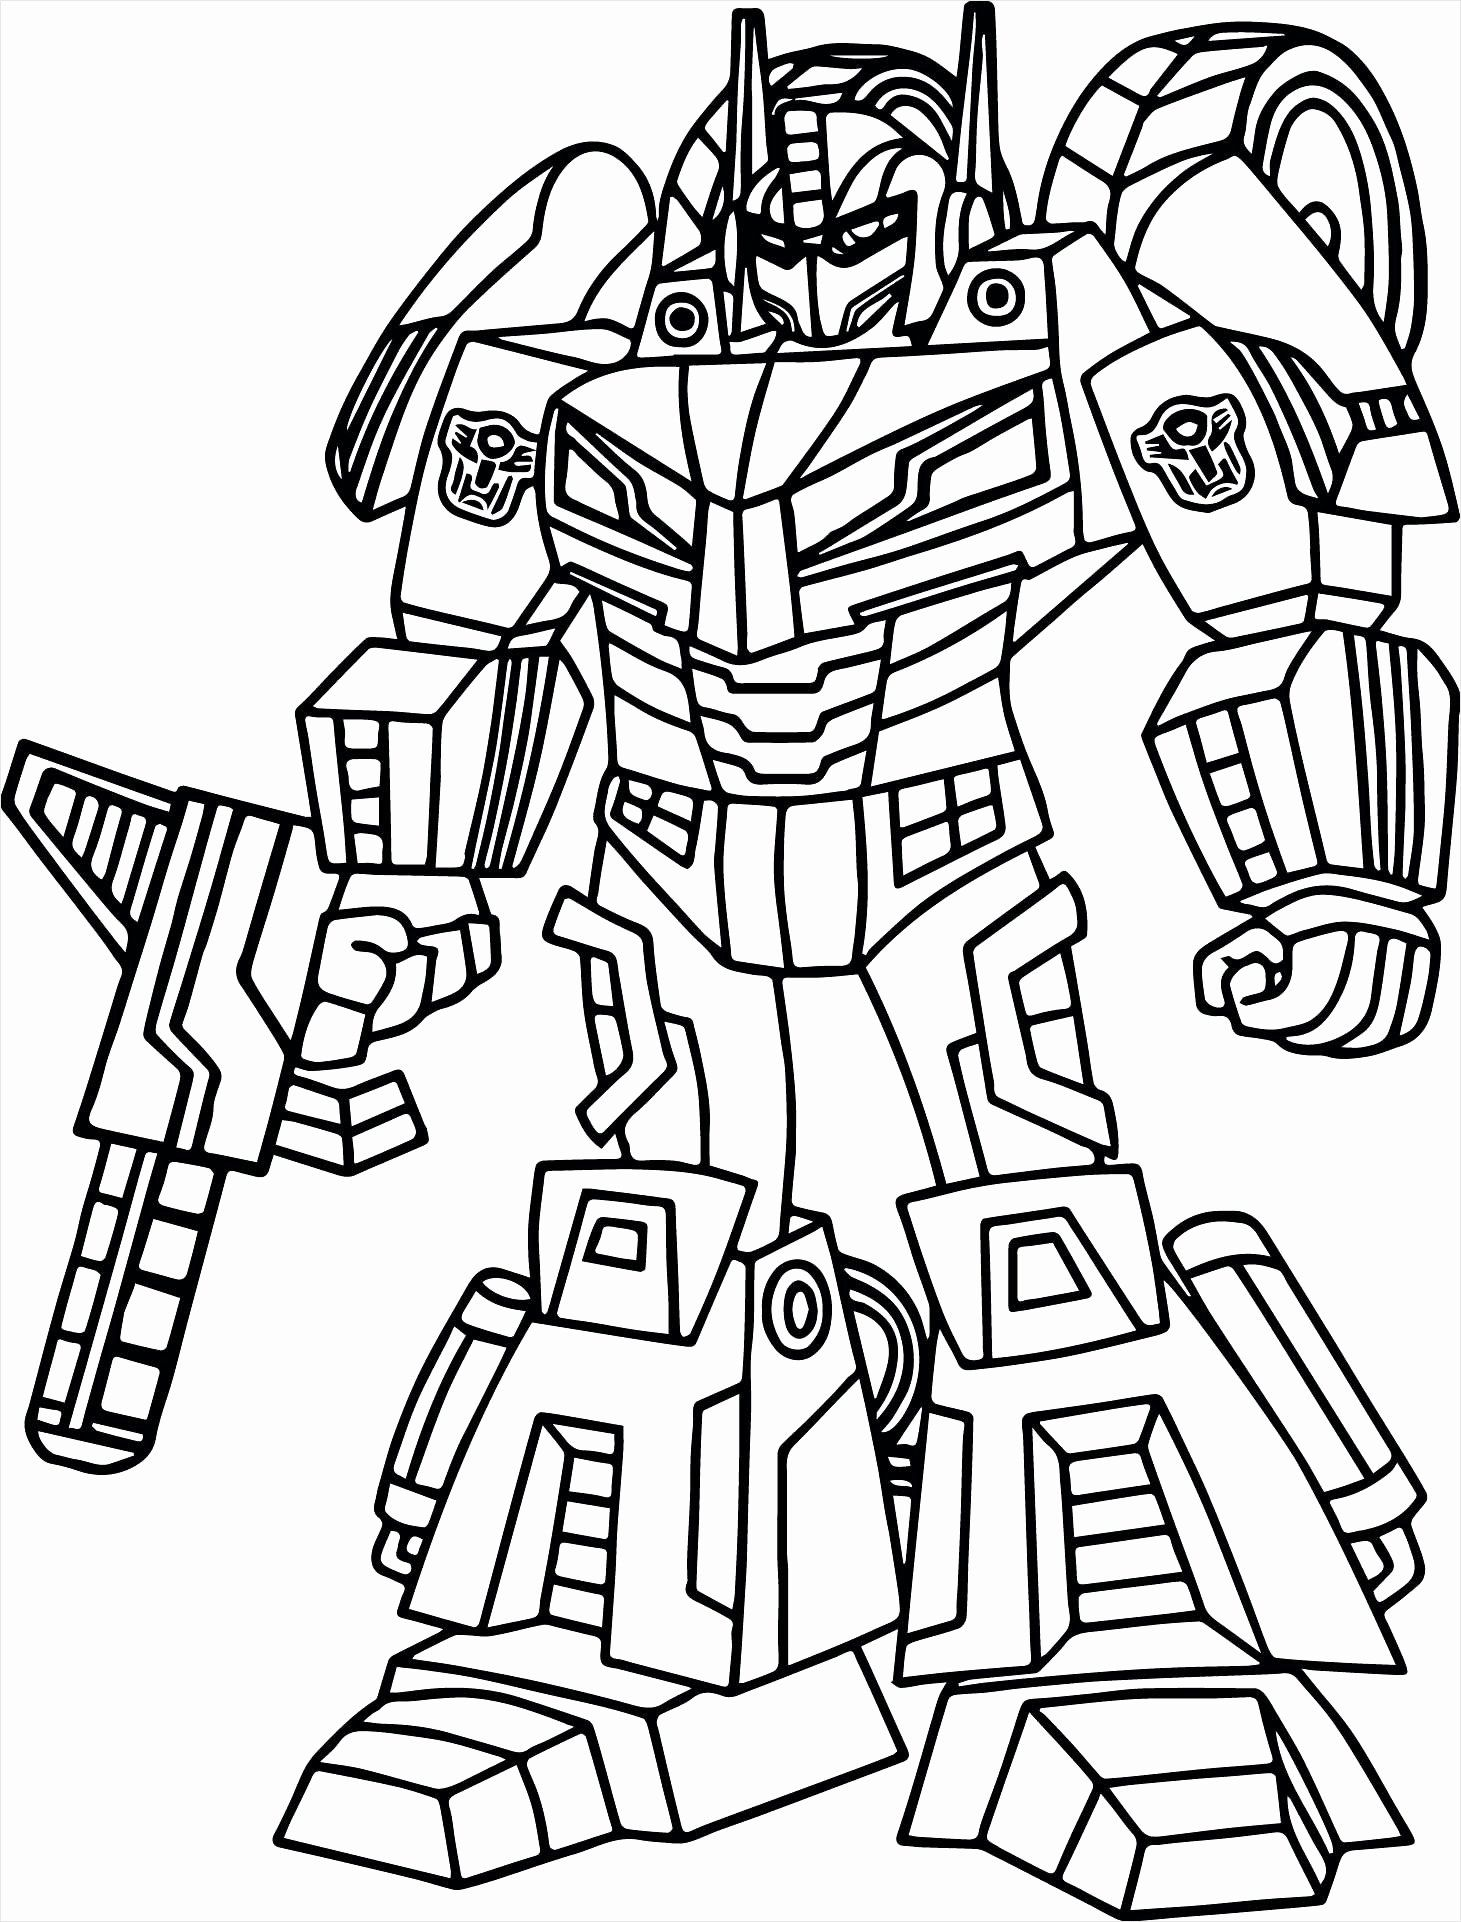 Bumblebee Transformer Coloring Page Awesome 21 Bumblebee Transformer Coloring Page In 2020 Transformers Coloring Pages Coloring Pages Inspirational Cars Coloring Pages